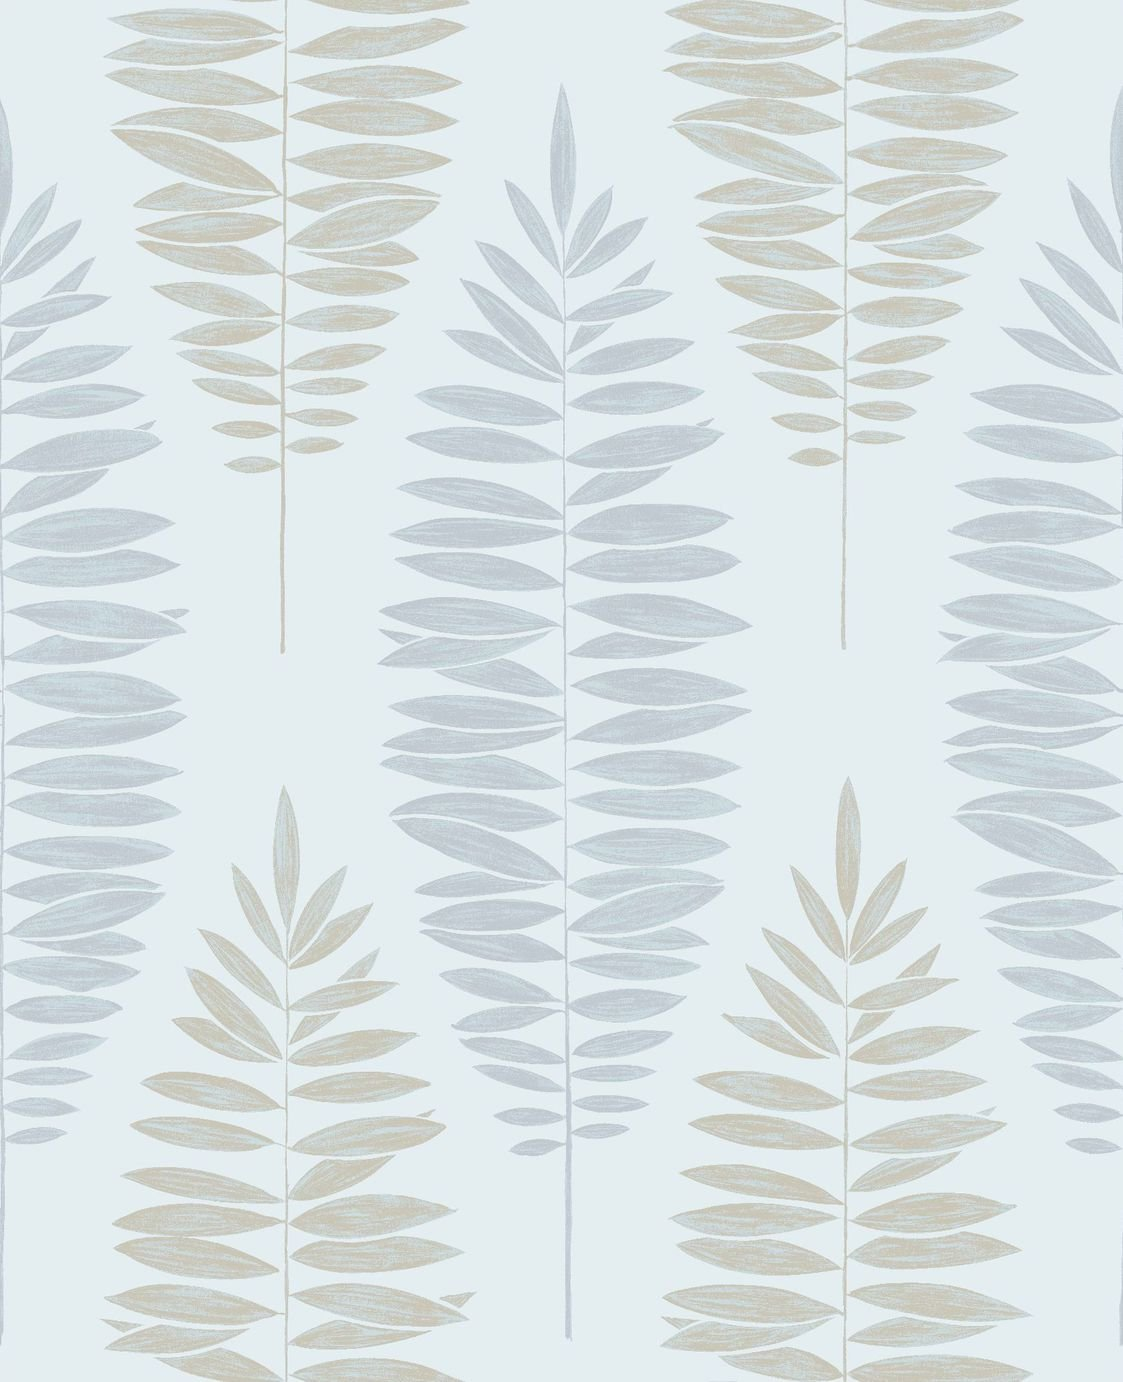 Image of Graham & Brown Boutique Lucia Wallpaper Duck Egg